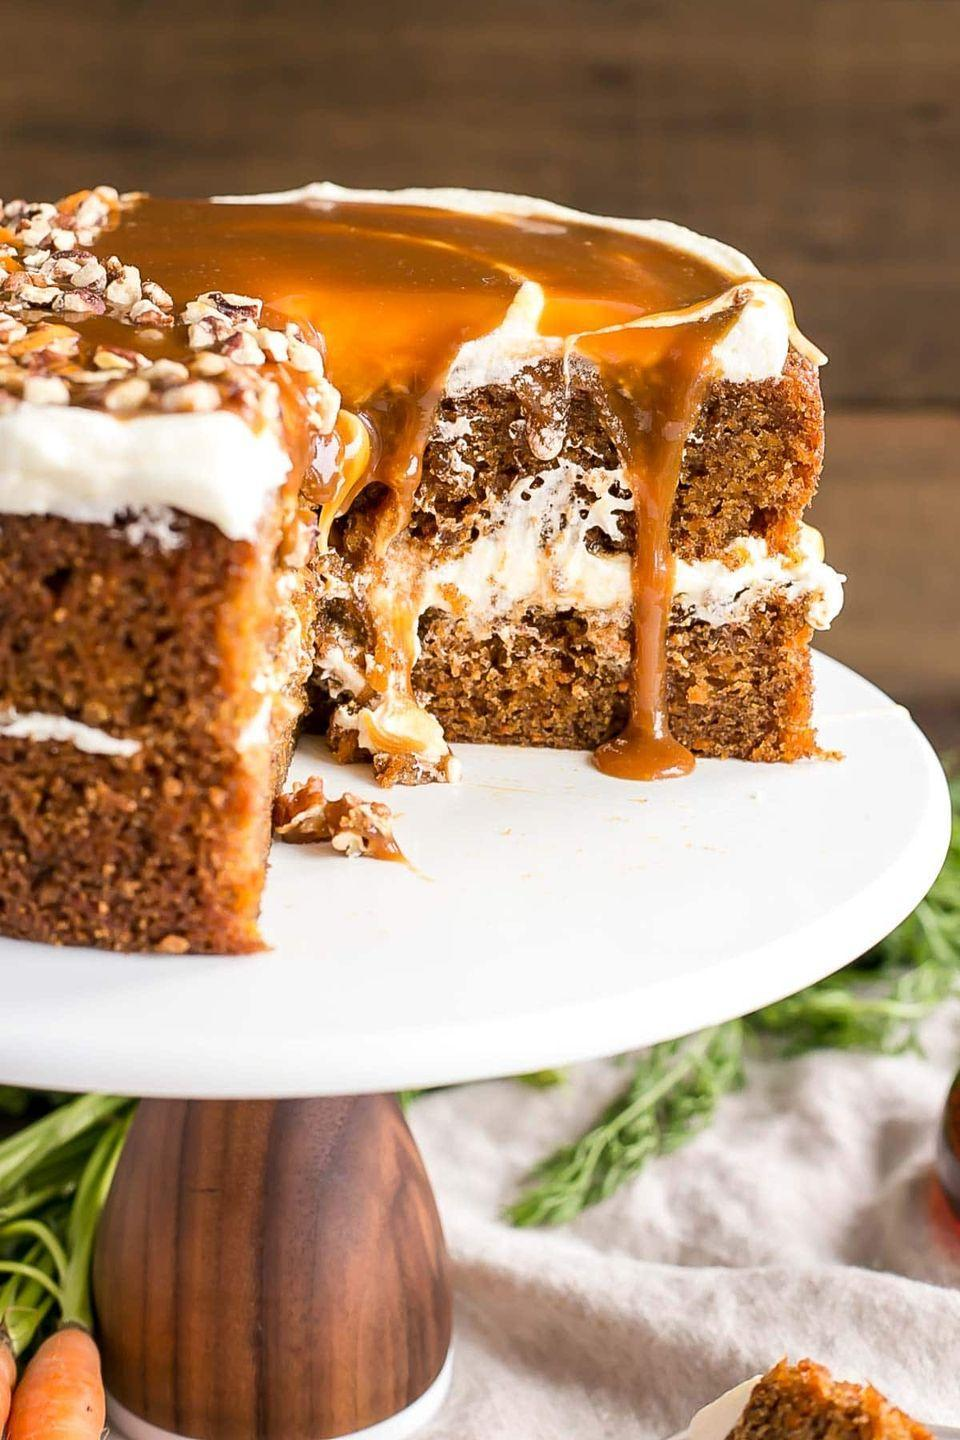 "<p>It turns out that pouring maple caramel sauce on top of a carrot cake will make it out-of-this-world good.</p><p><strong>Get the recipe at <a href=""https://livforcake.com/maple-caramel-carrot-cake/"" rel=""nofollow noopener"" target=""_blank"" data-ylk=""slk:Liv for Cake"" class=""link rapid-noclick-resp"">Liv for Cake</a>.</strong></p><p><strong><a class=""link rapid-noclick-resp"" href=""https://go.redirectingat.com?id=74968X1596630&url=https%3A%2F%2Fwww.walmart.com%2Fsearch%2F%3Fquery%3Dcake%2Bstand&sref=https%3A%2F%2Fwww.thepioneerwoman.com%2Ffood-cooking%2Fmeals-menus%2Fg35408493%2Feaster-desserts%2F"" rel=""nofollow noopener"" target=""_blank"" data-ylk=""slk:SHOP CAKE STANDS"">SHOP CAKE STANDS</a><br></strong></p>"